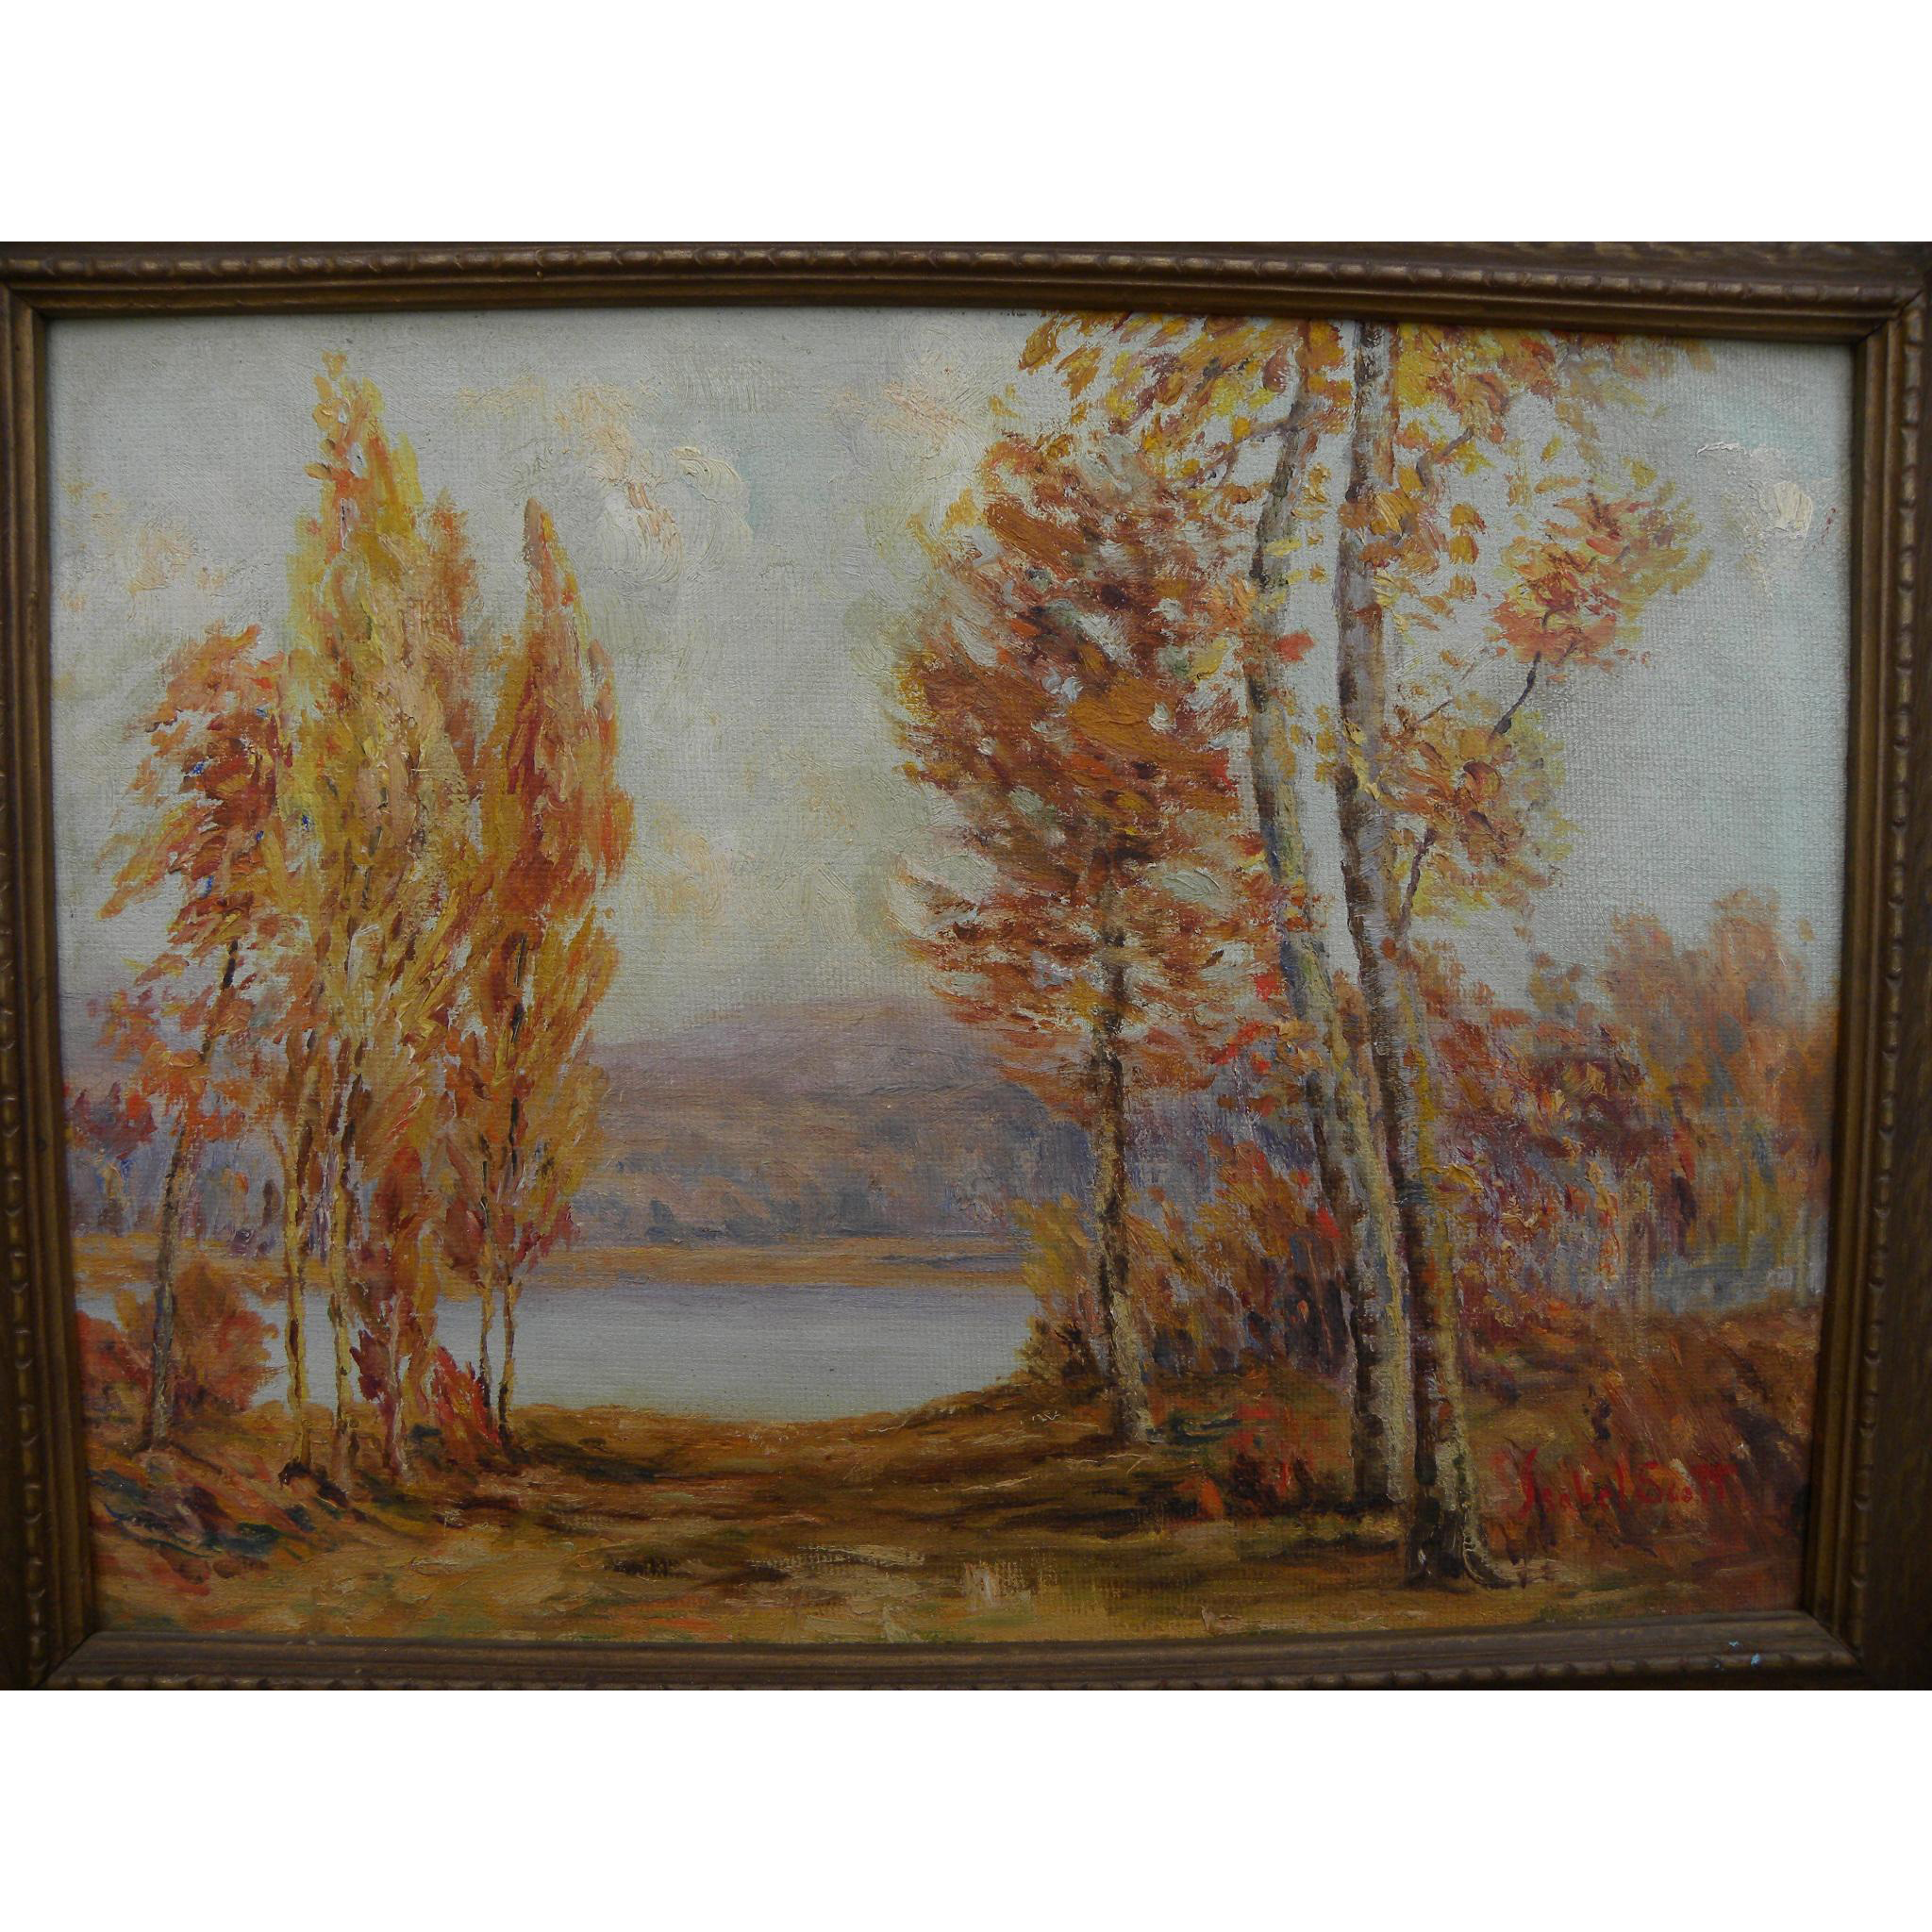 Vintage impressionist autumn landscape painting signed by American artist Isabel Scott